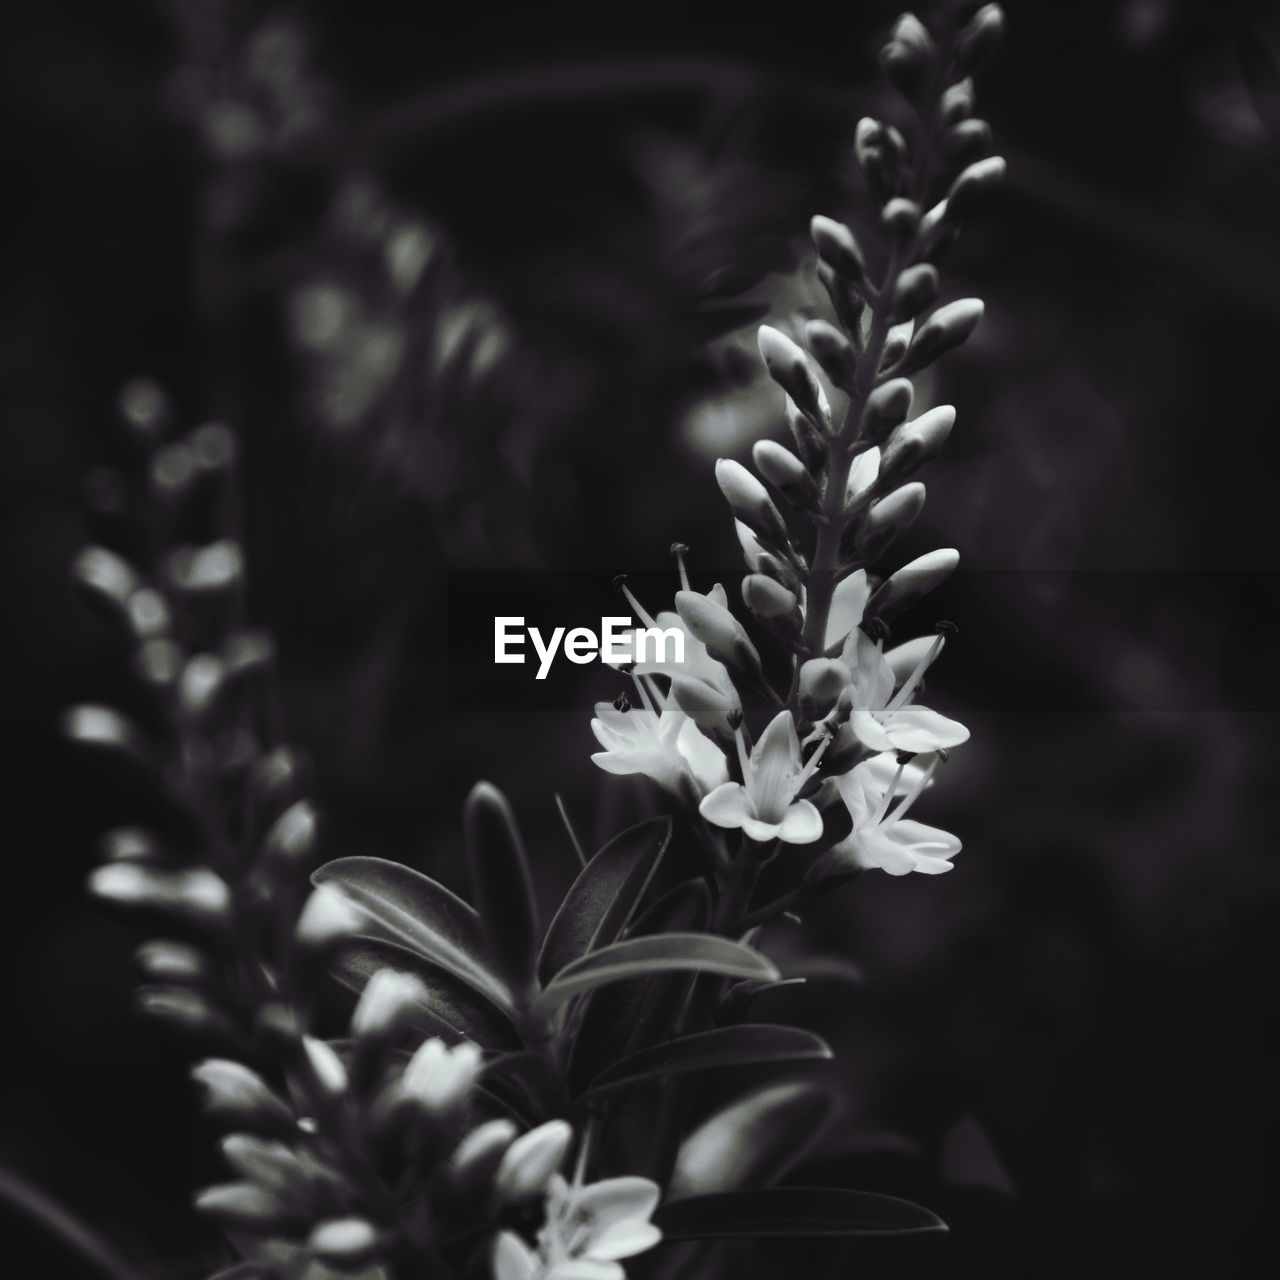 plant, beauty in nature, growth, close-up, selective focus, freshness, no people, flower, fragility, vulnerability, flowering plant, nature, focus on foreground, petal, leaf, plant part, day, outdoors, tranquility, flower head